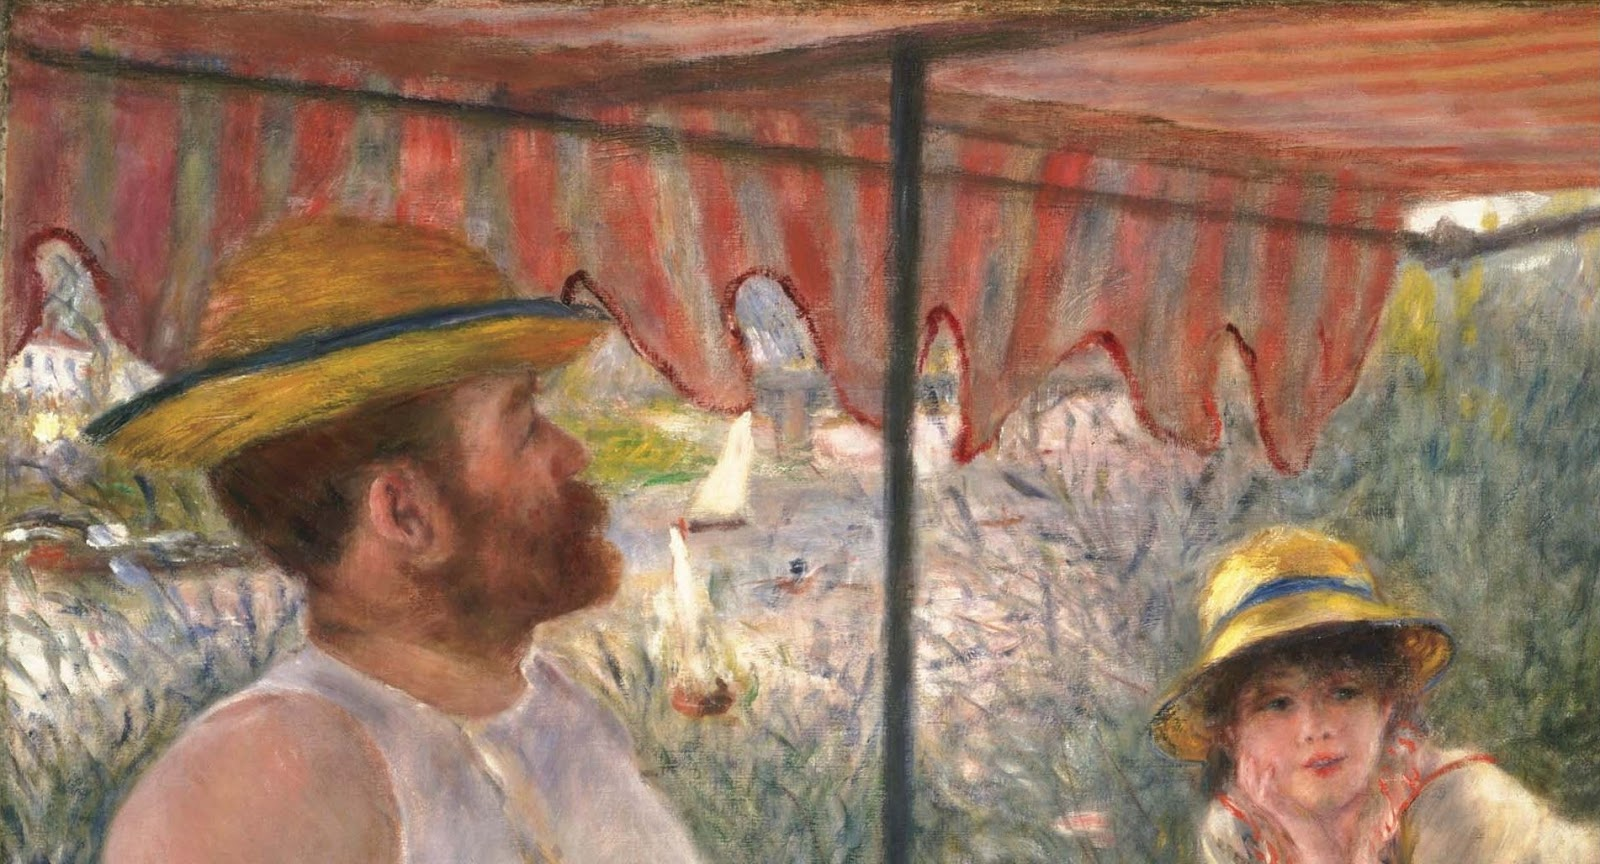 renoir luncheon of the boating party 80% off hand made oil painting reproduction of luncheon of the boating party, one of the most famous paintings by pierre auguste renoir currently housed in the phillips collection in washington, pierre-auguste renoir&#39s.